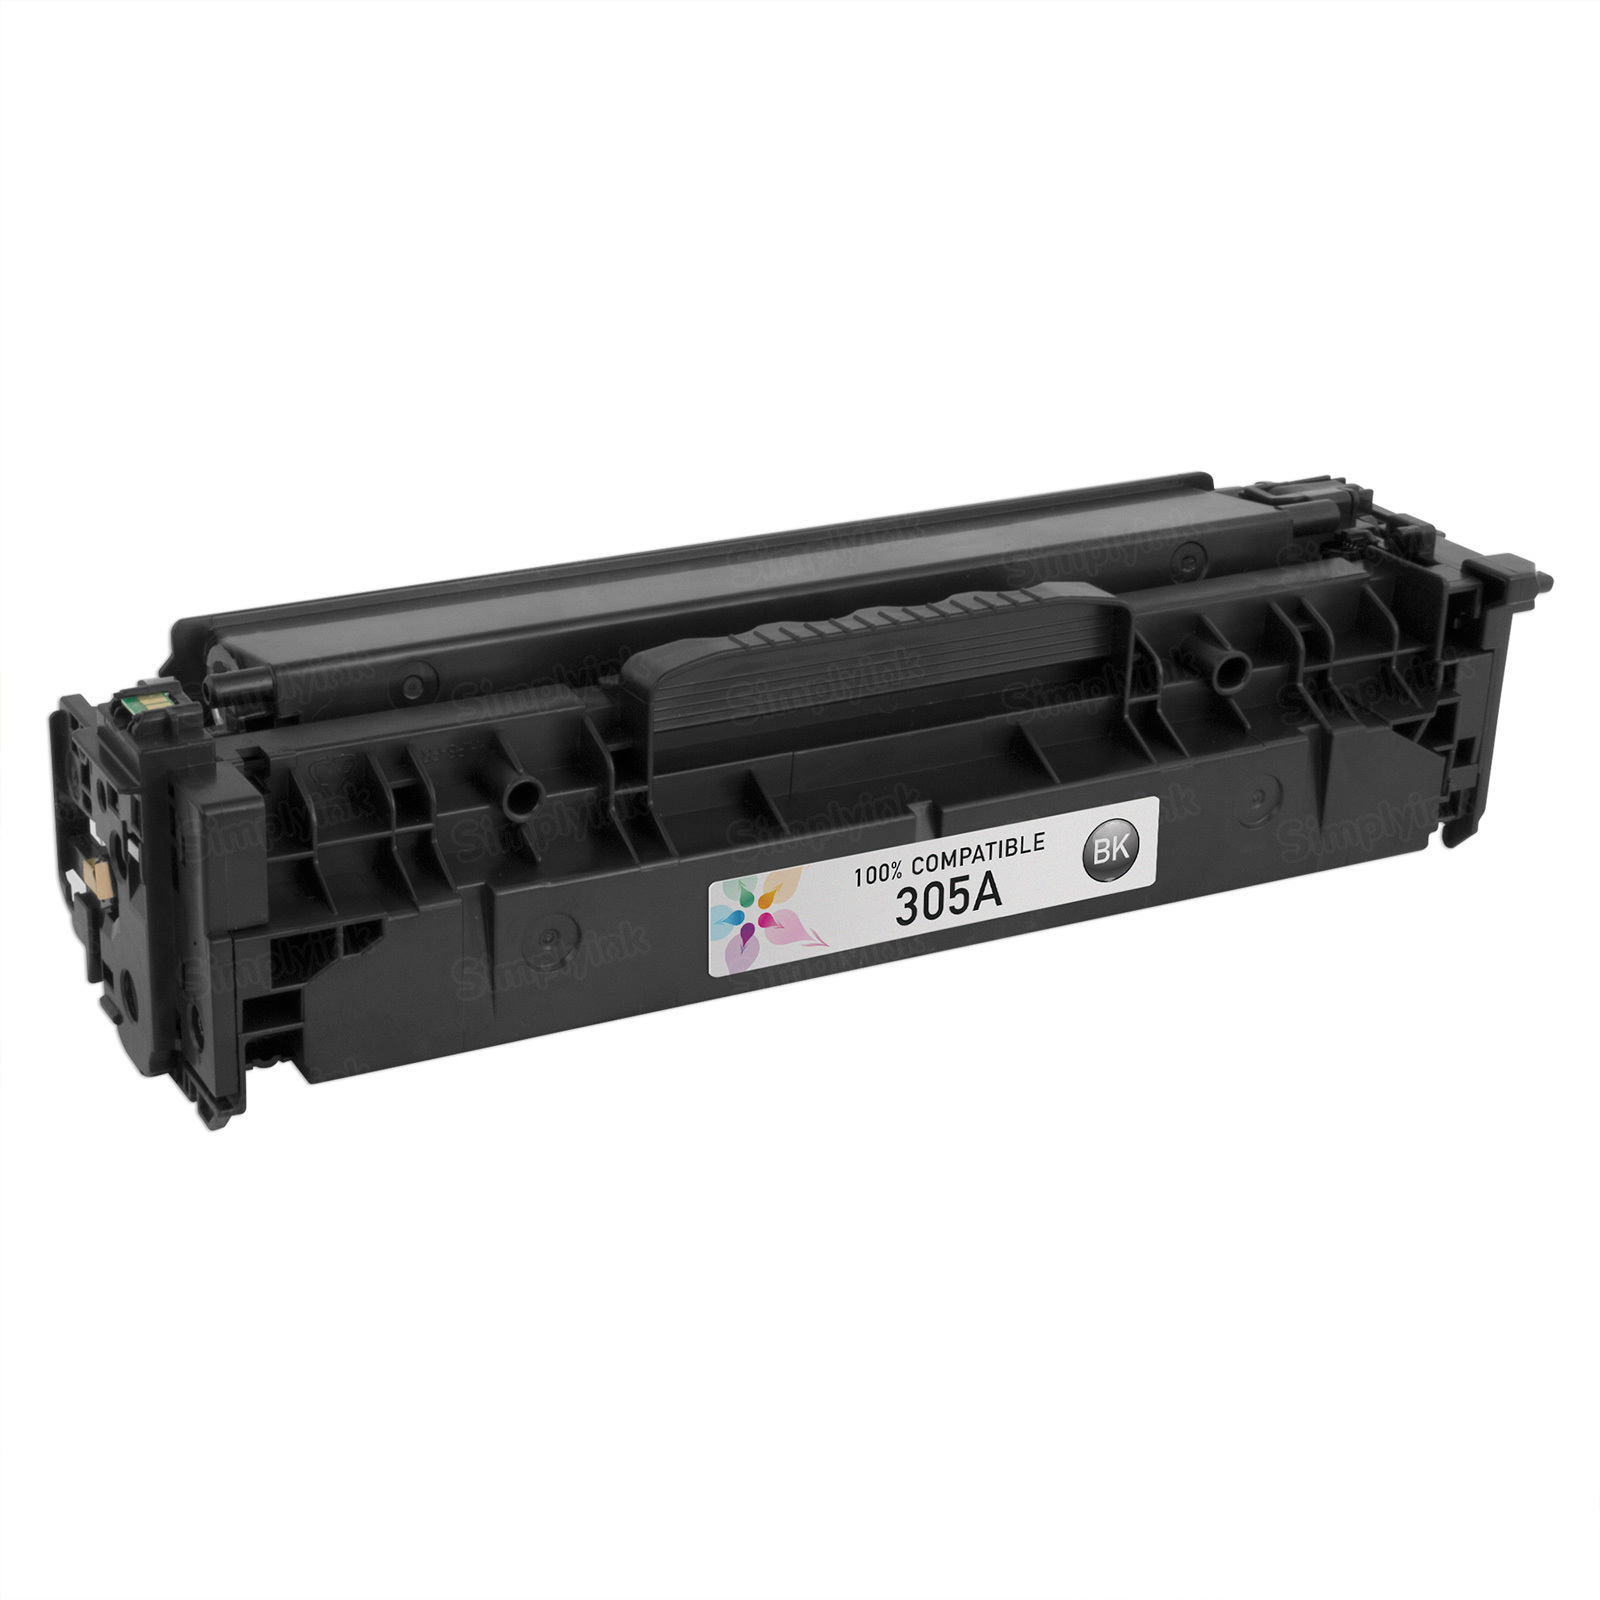 Replacement Black Toner for HP 305A